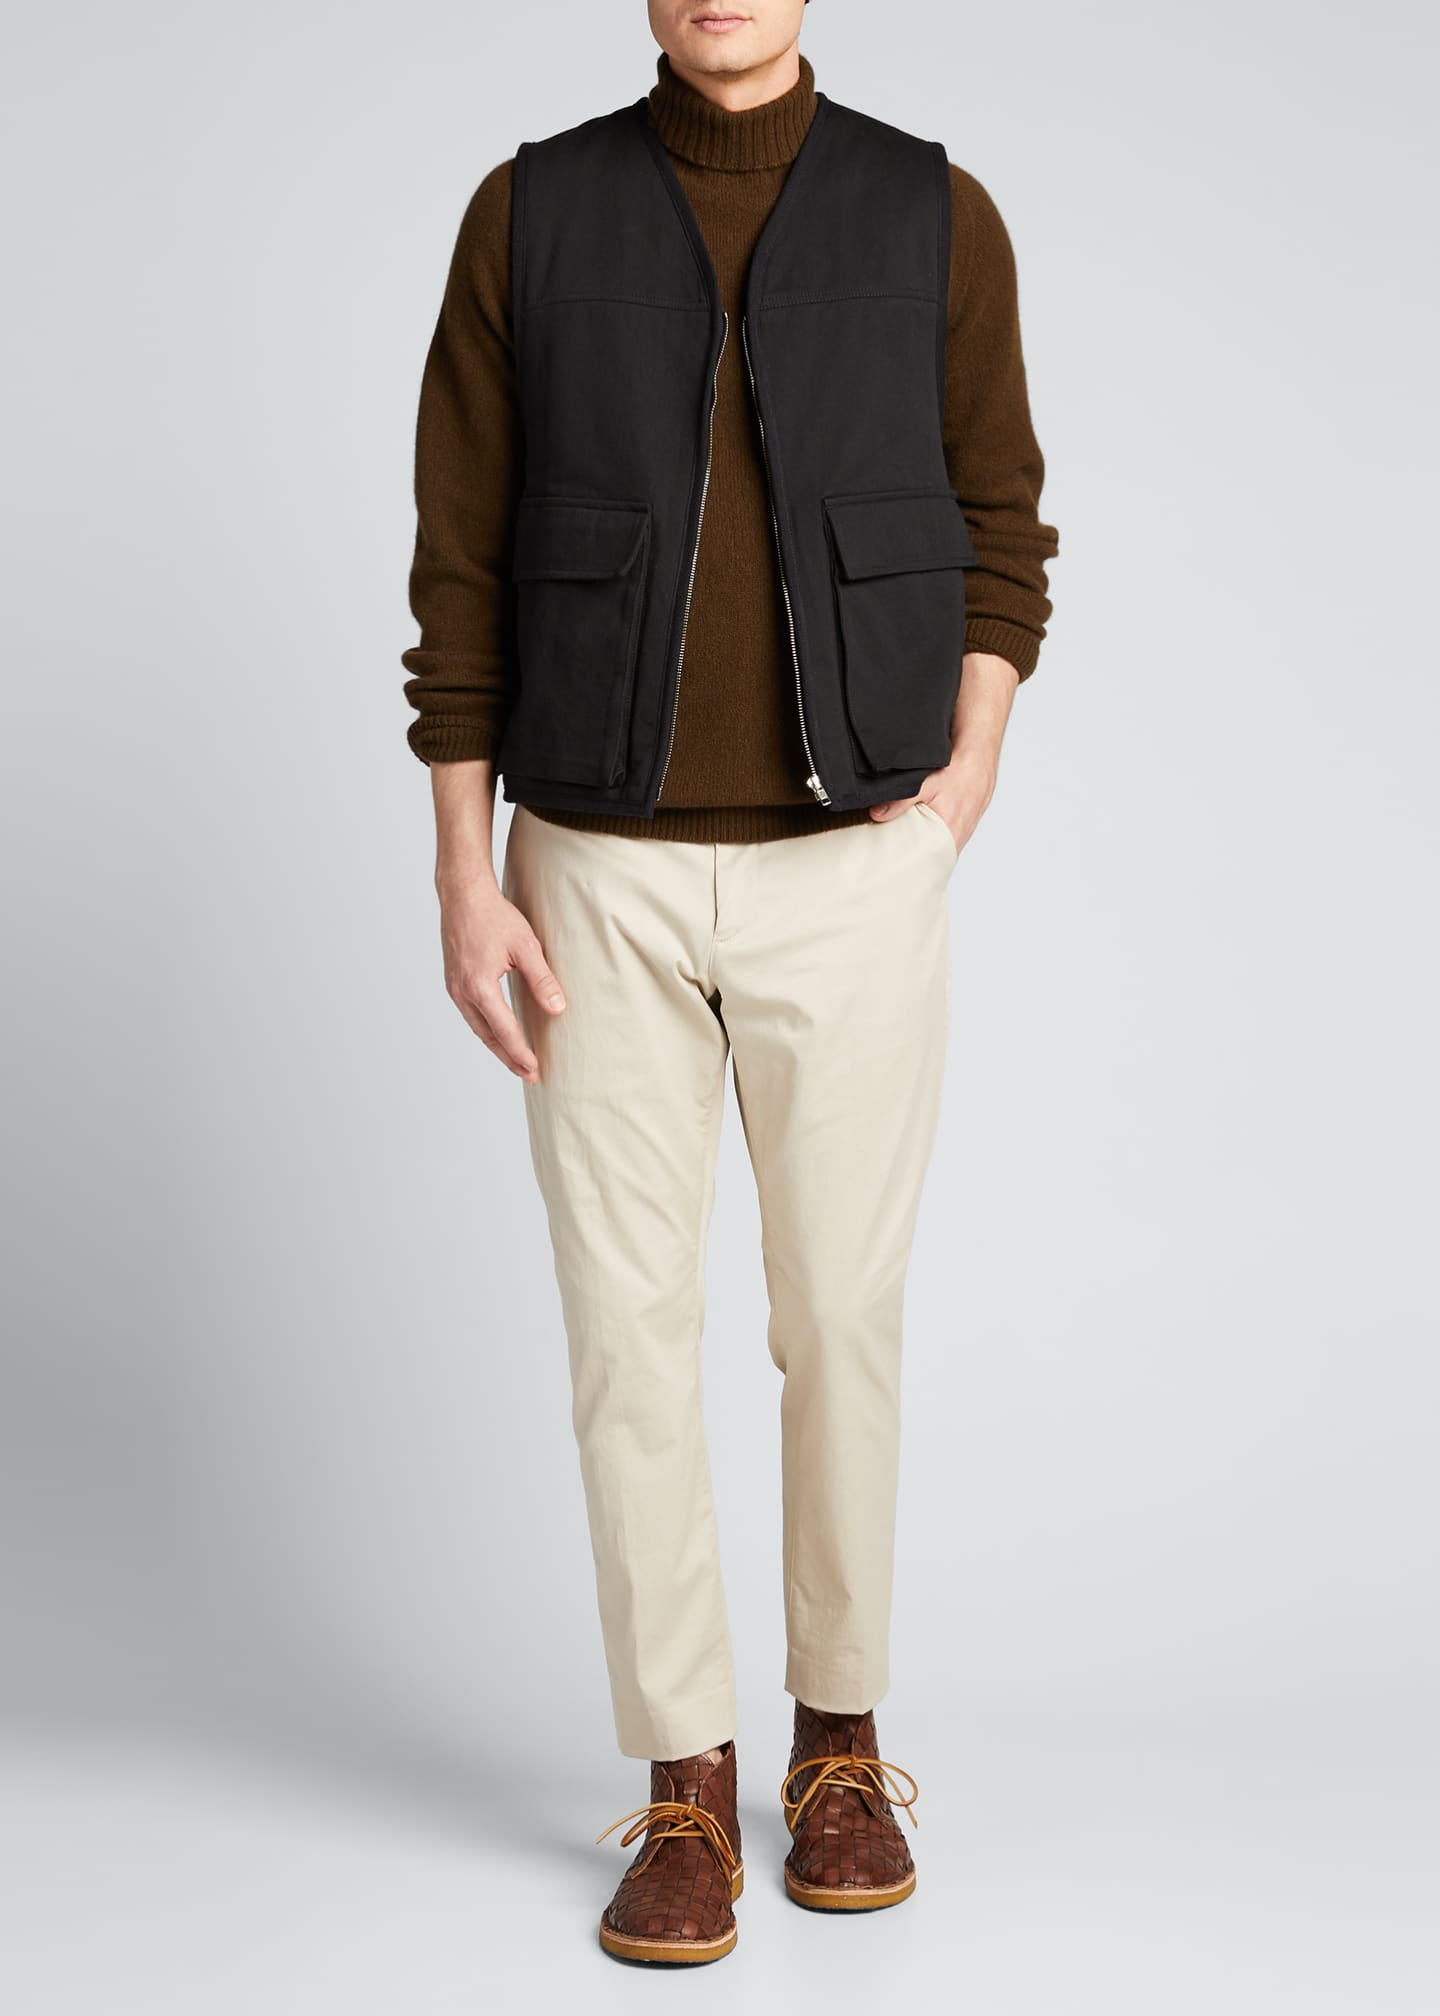 Margaret Howell Men's Work Vest with Shearling Lining